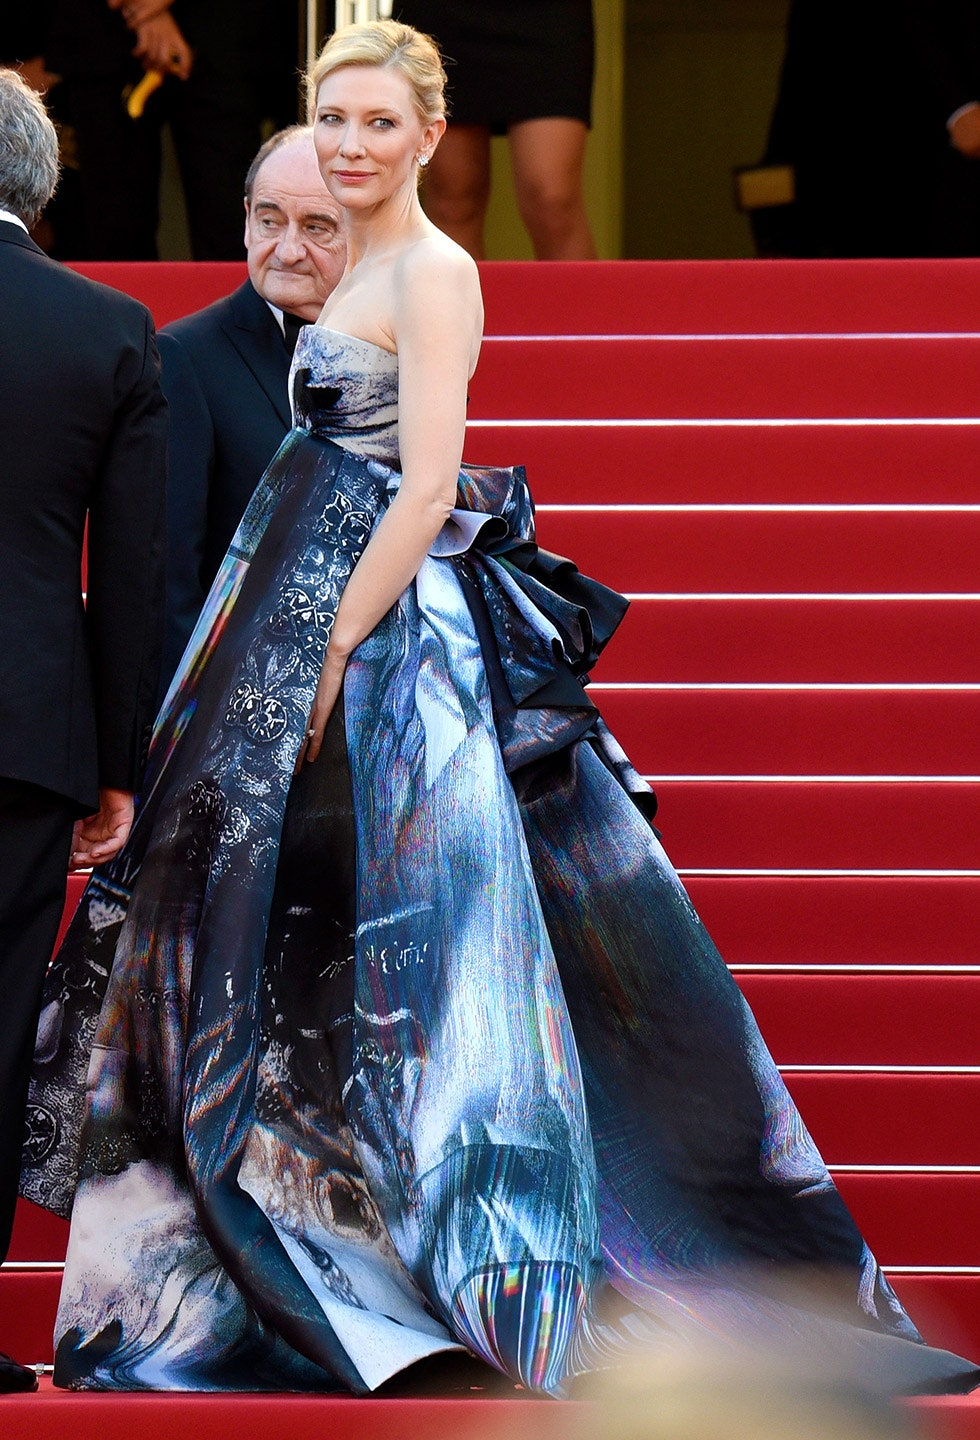 32_a_billowing_giles_gown_was_the_perfect_choice_for_the_carol_premiere_at_the_2015_cannes_film_festival.jpg